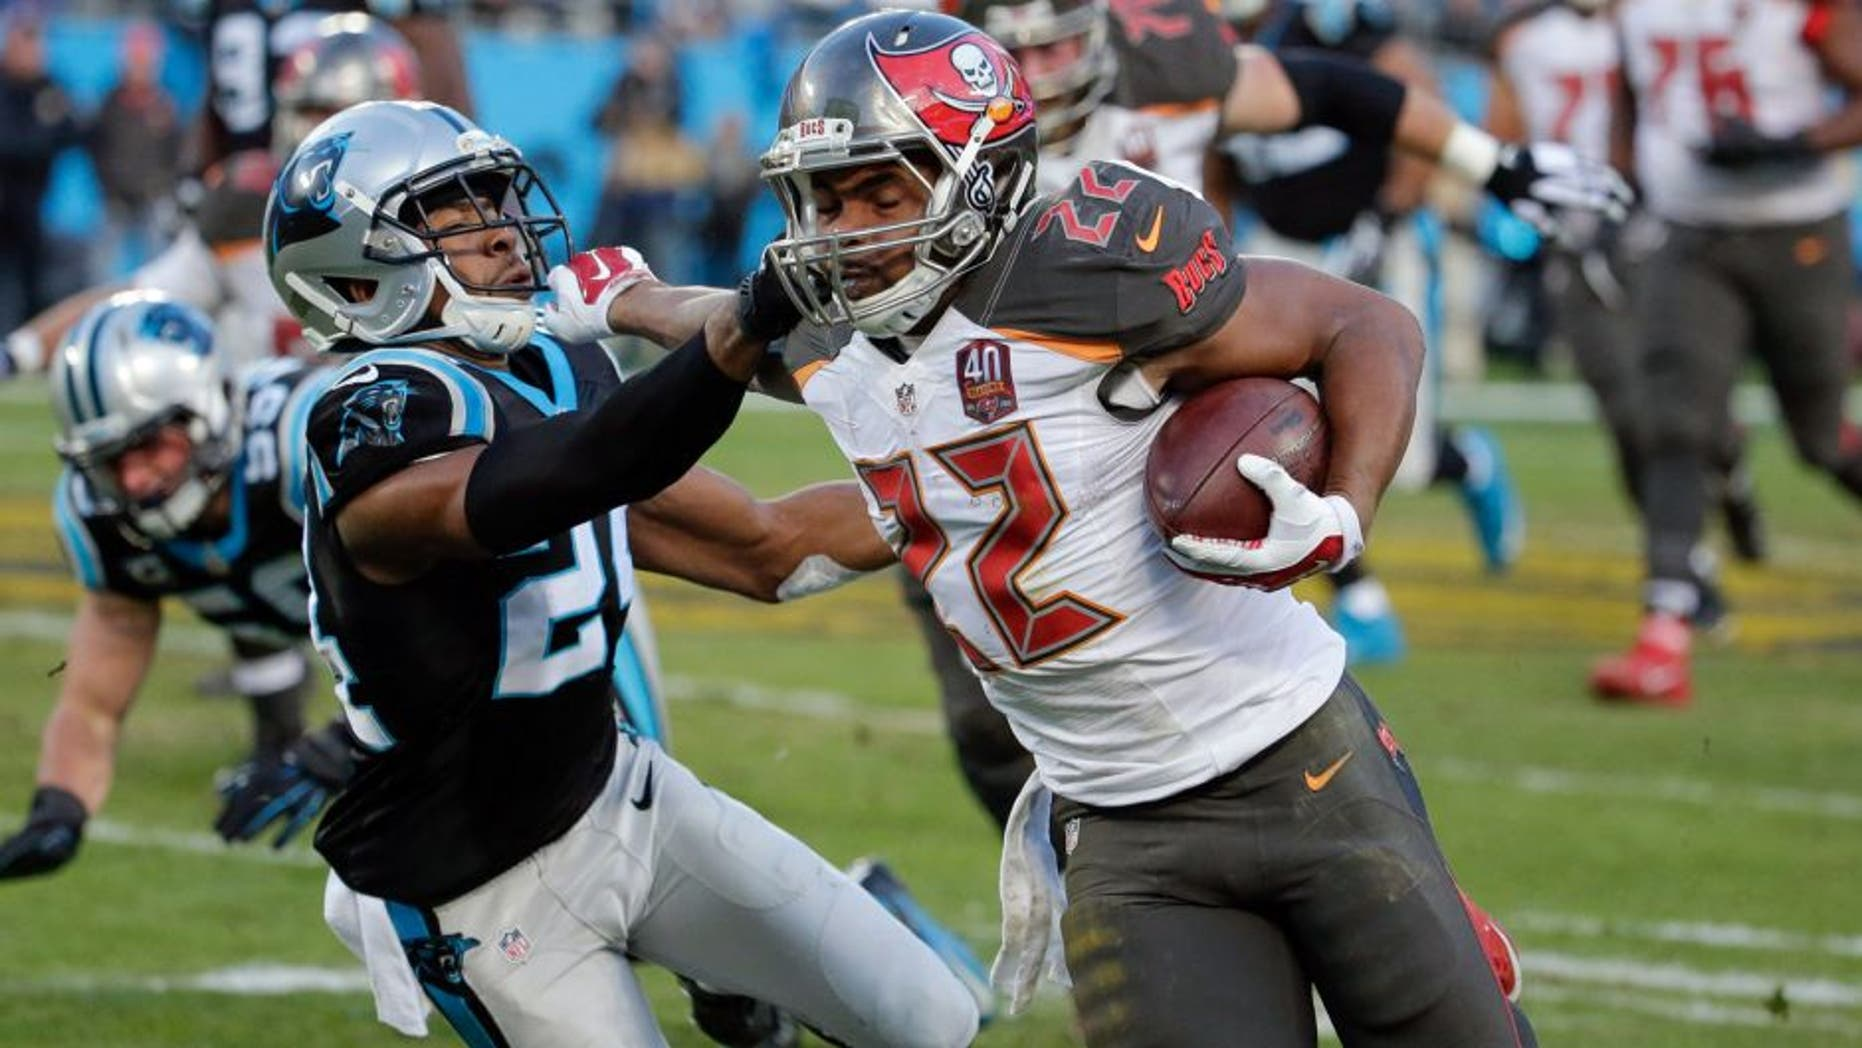 Jan 3, 2016; Charlotte, NC, USA; Tampa Bay Buccaneers running back Doug Martin (22) stiff arms Carolina Panthers cornerback Josh Norman (24) during the second quarter at Bank of America Stadium. Mandatory Credit: Jeremy Brevard-USA TODAY Sports